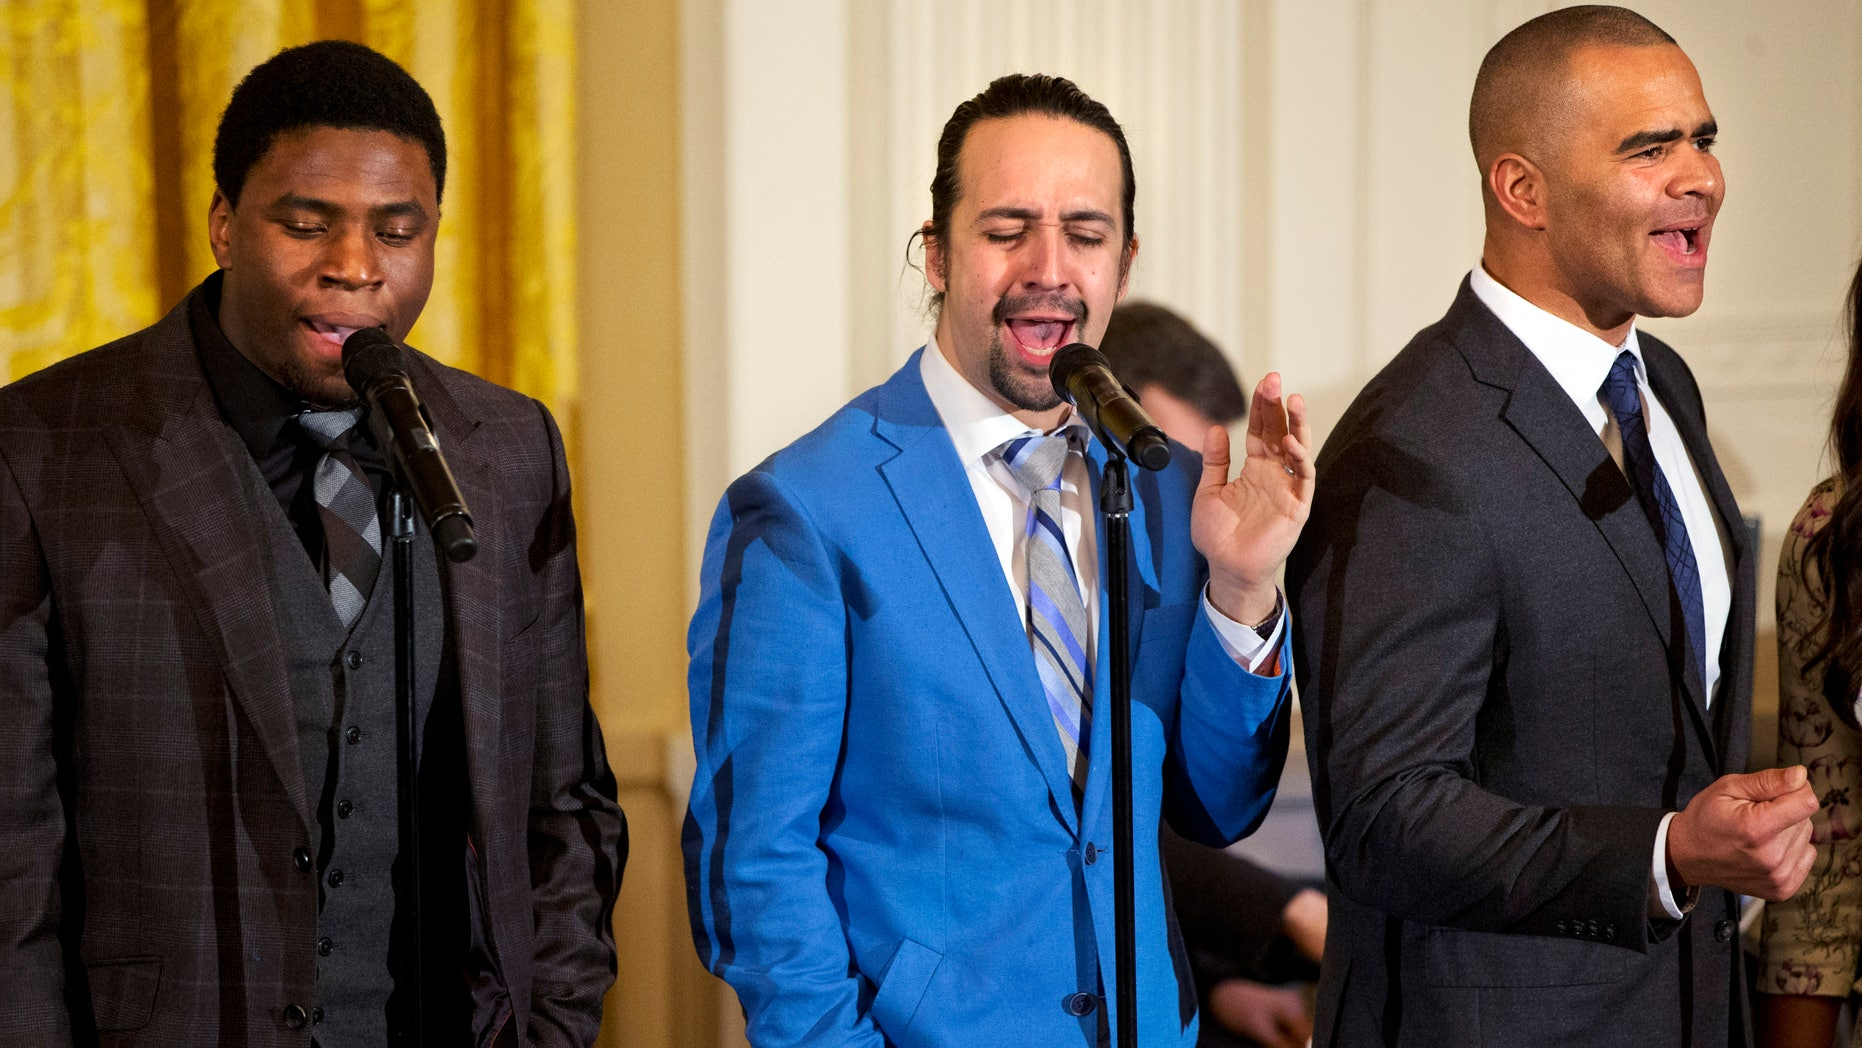 """Actor Okieriete Onaodowan, left, actor Lin-Manuel Miranda, and actor Christopher Jackson perform the song """"Alexander Hamilton"""" from the Broadway play """"Hamilton"""" in the East Room of the White House, in Washington, Monday, March 14, 2016. (AP Photo/Jacquelyn Martin)"""